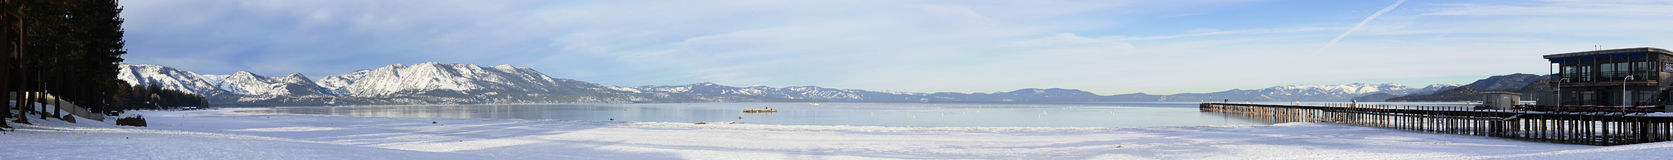 Panorama Lake Tahoe with mountains Royalty Free Stock Image